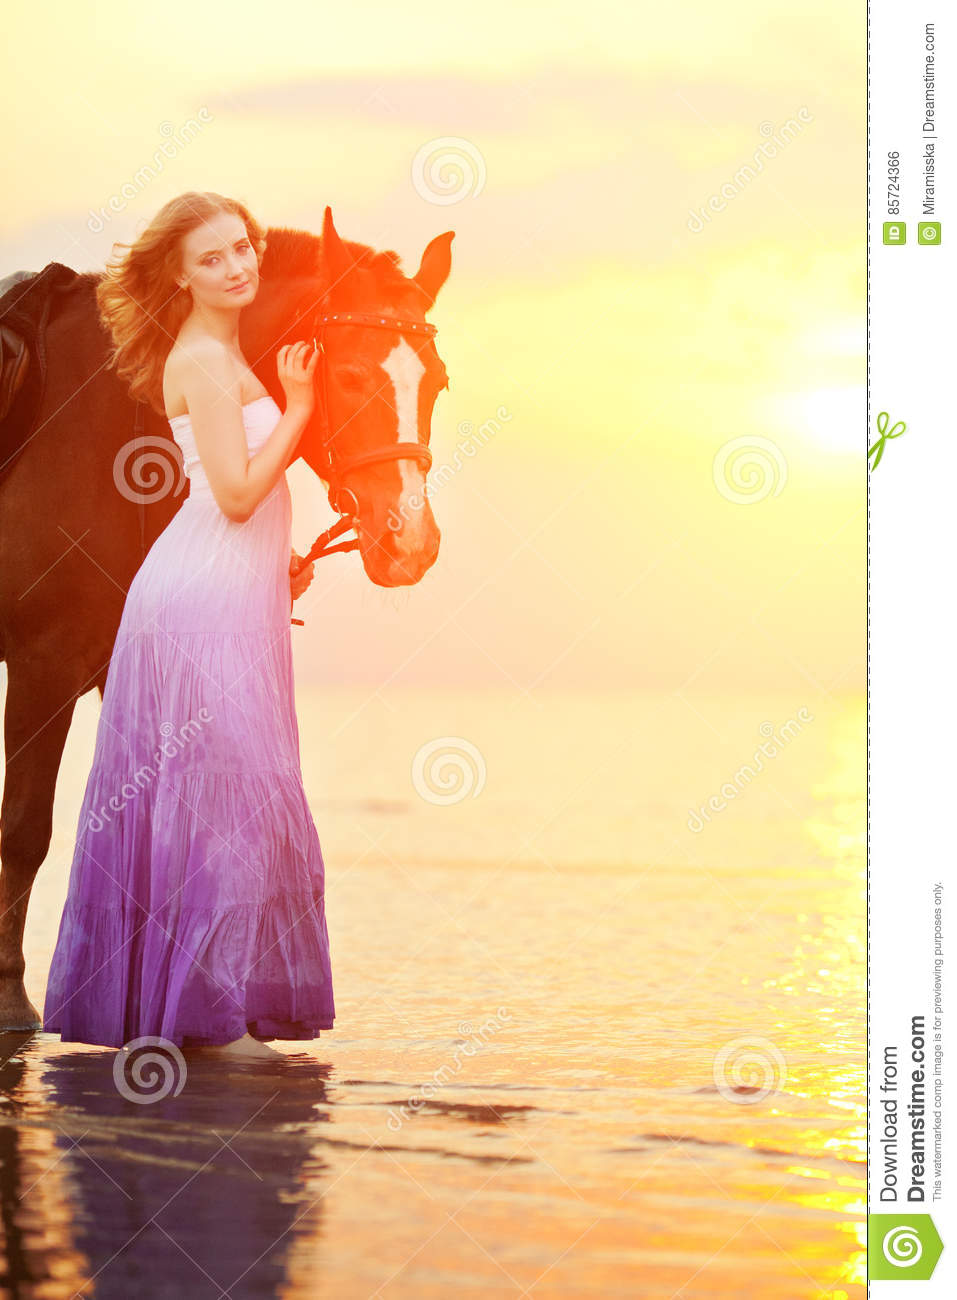 Beautiful woman riding a horse at sunset on the beach. Young girl with a horse in the rays of the sun by the sea.